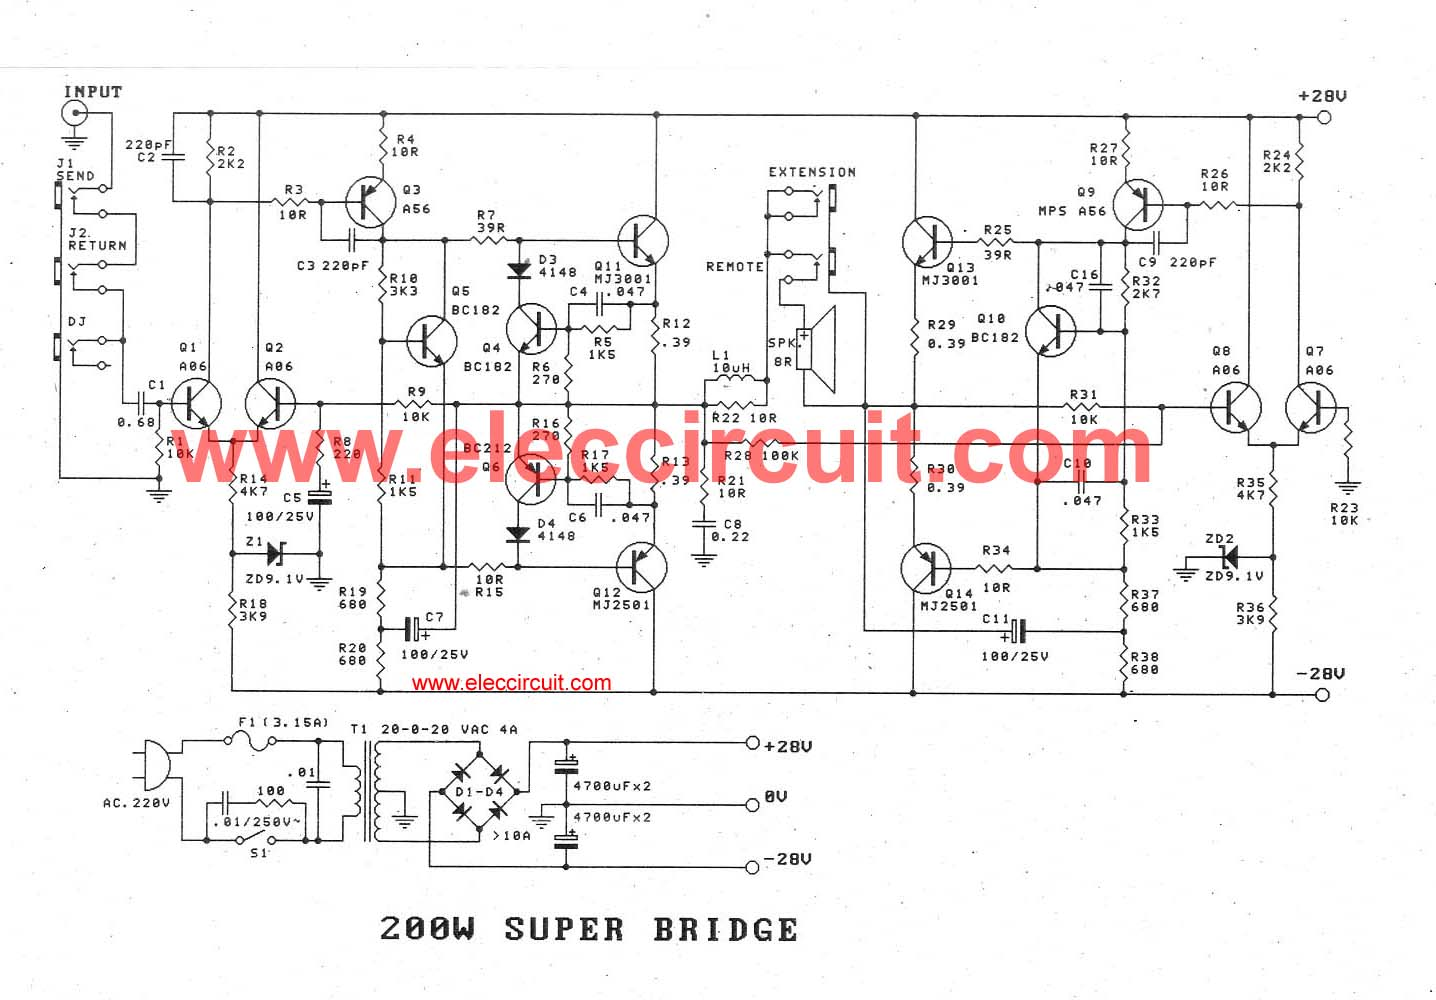 hight resolution of 200w layout audio power amplifier circuit diagram schema diagram power amplifier wiring circuit diagram super circuit diagram